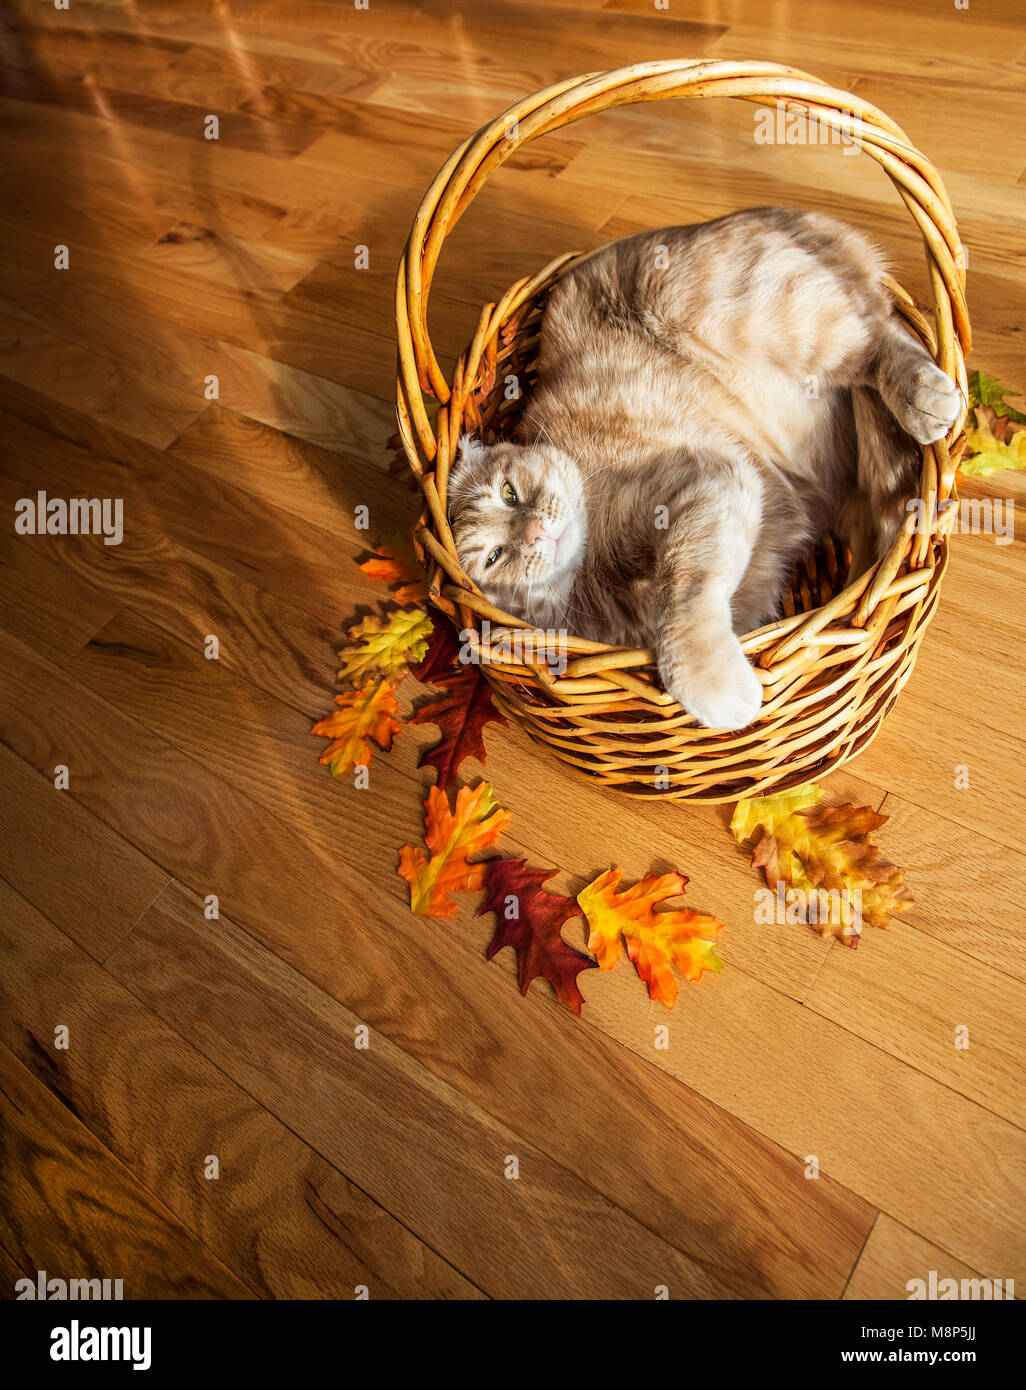 Domestic orange tabby cat in a basket, leaves, New Jersey, USA, Nov 2017, FS 11.92 MB, funny domestic cars animals isolated kittens in autumn Stock Photo